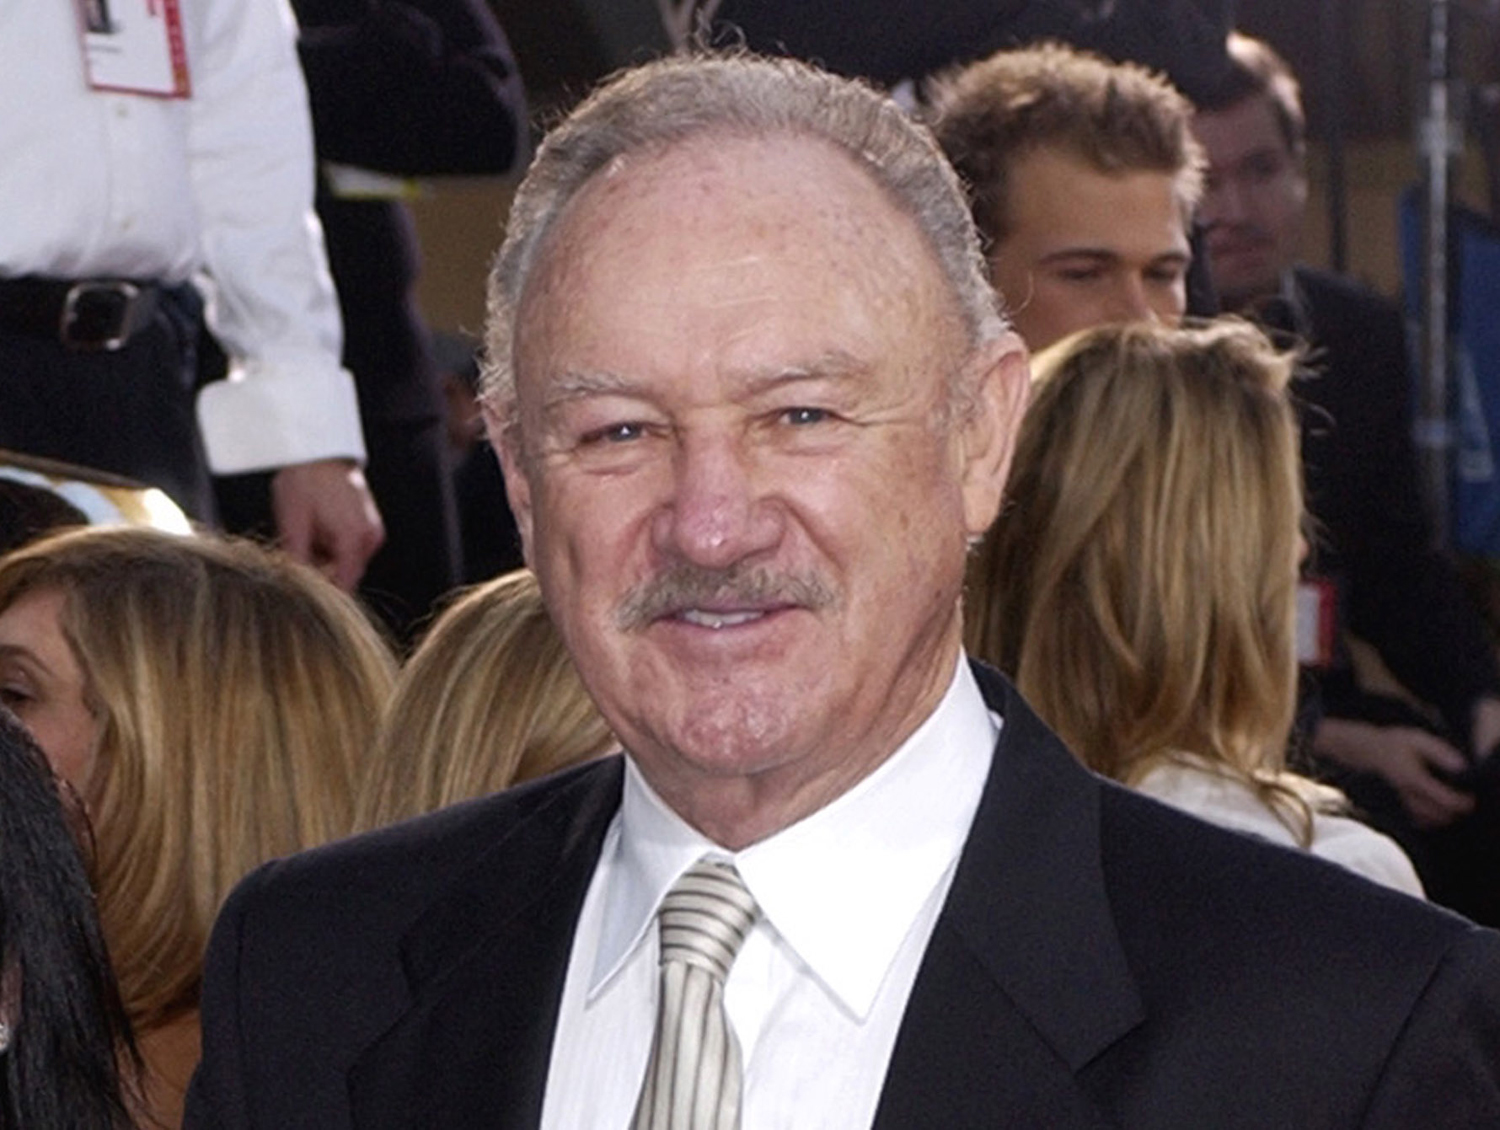 This Jan. 19, 2003 file photo shows actor Gene Hackman at the 60th Annual Golden Globe Awards in Beverly Hills, Calif.